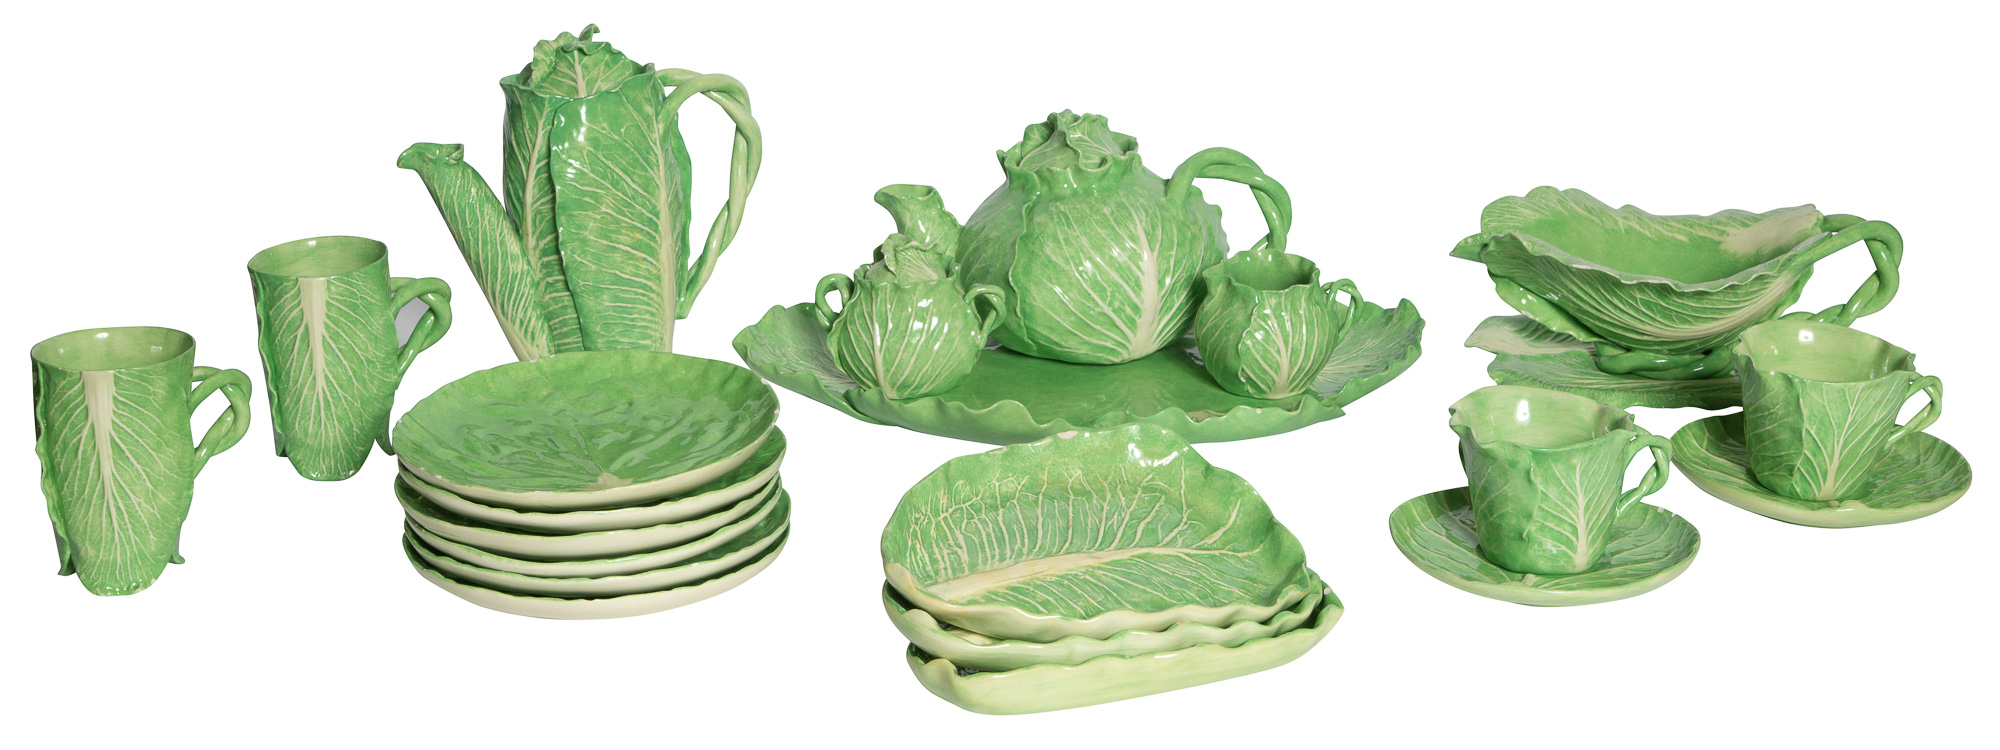 Lot image - Dodie Thayer Green Glazed Cabbage Form Ceramic Table Service